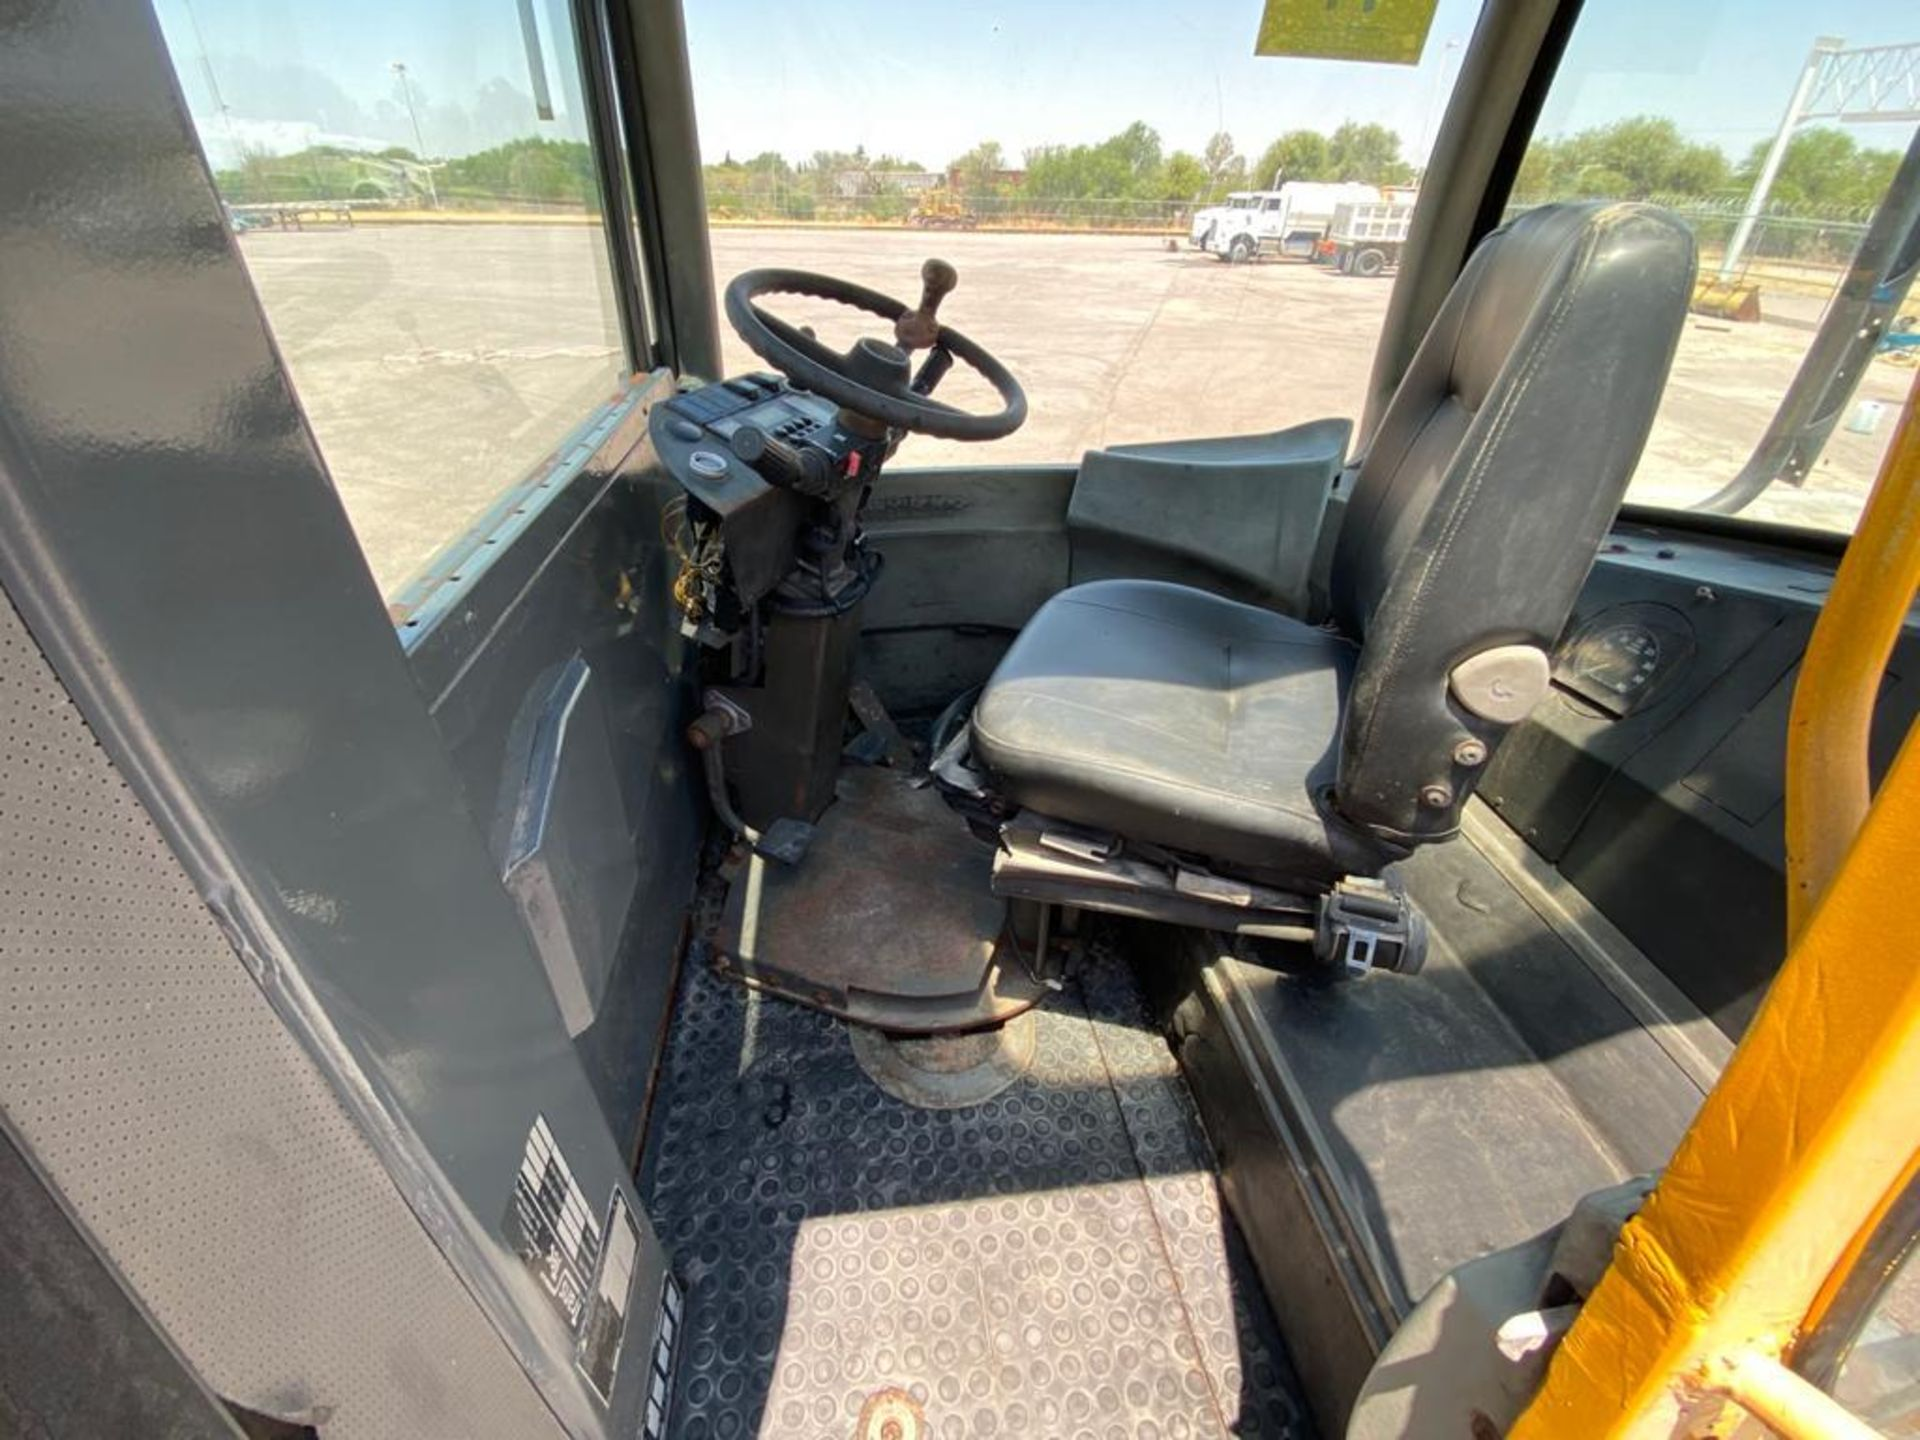 Terberg Capacity 2002 Terminal Tractor, automatic transmission - Image 20 of 57